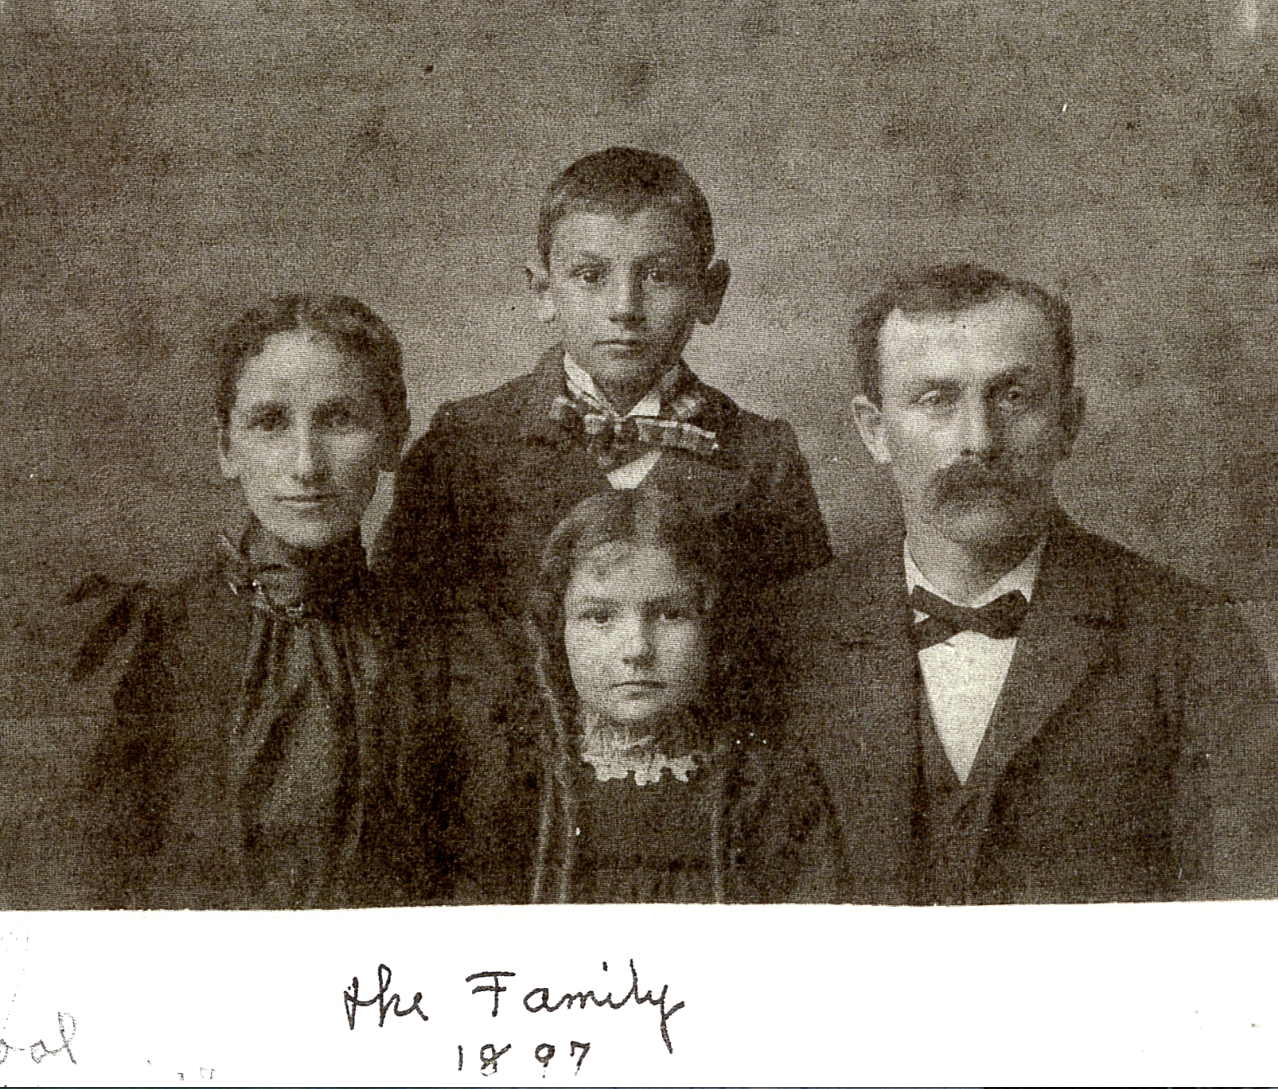 Wight family 1897